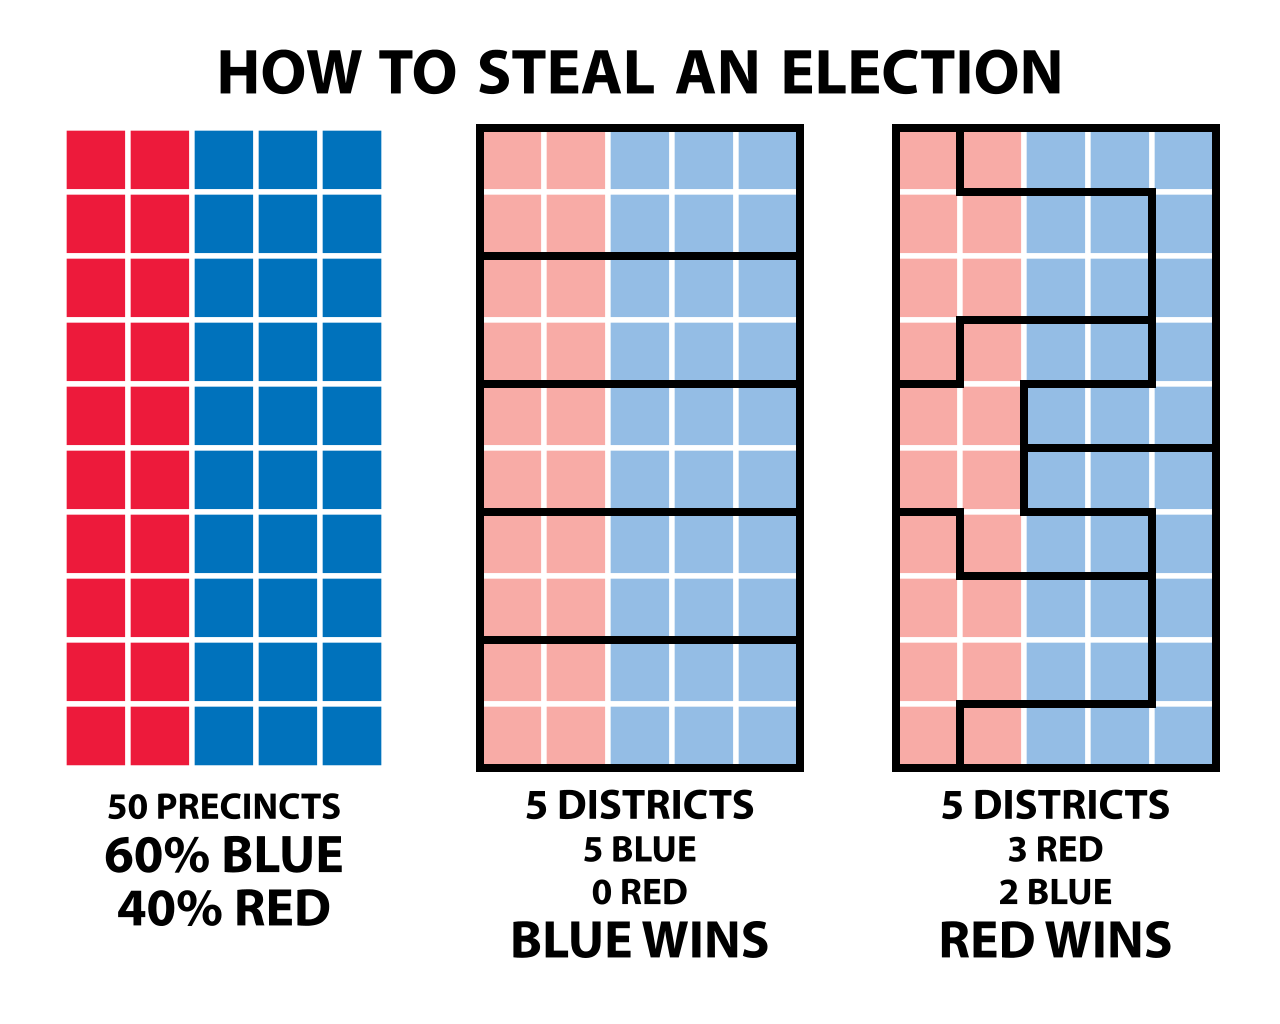 https://en.wikipedia.org/wiki/Gerrymandering#/media/File:How_to_Steal_an_Election_-_Gerrymandering.svg